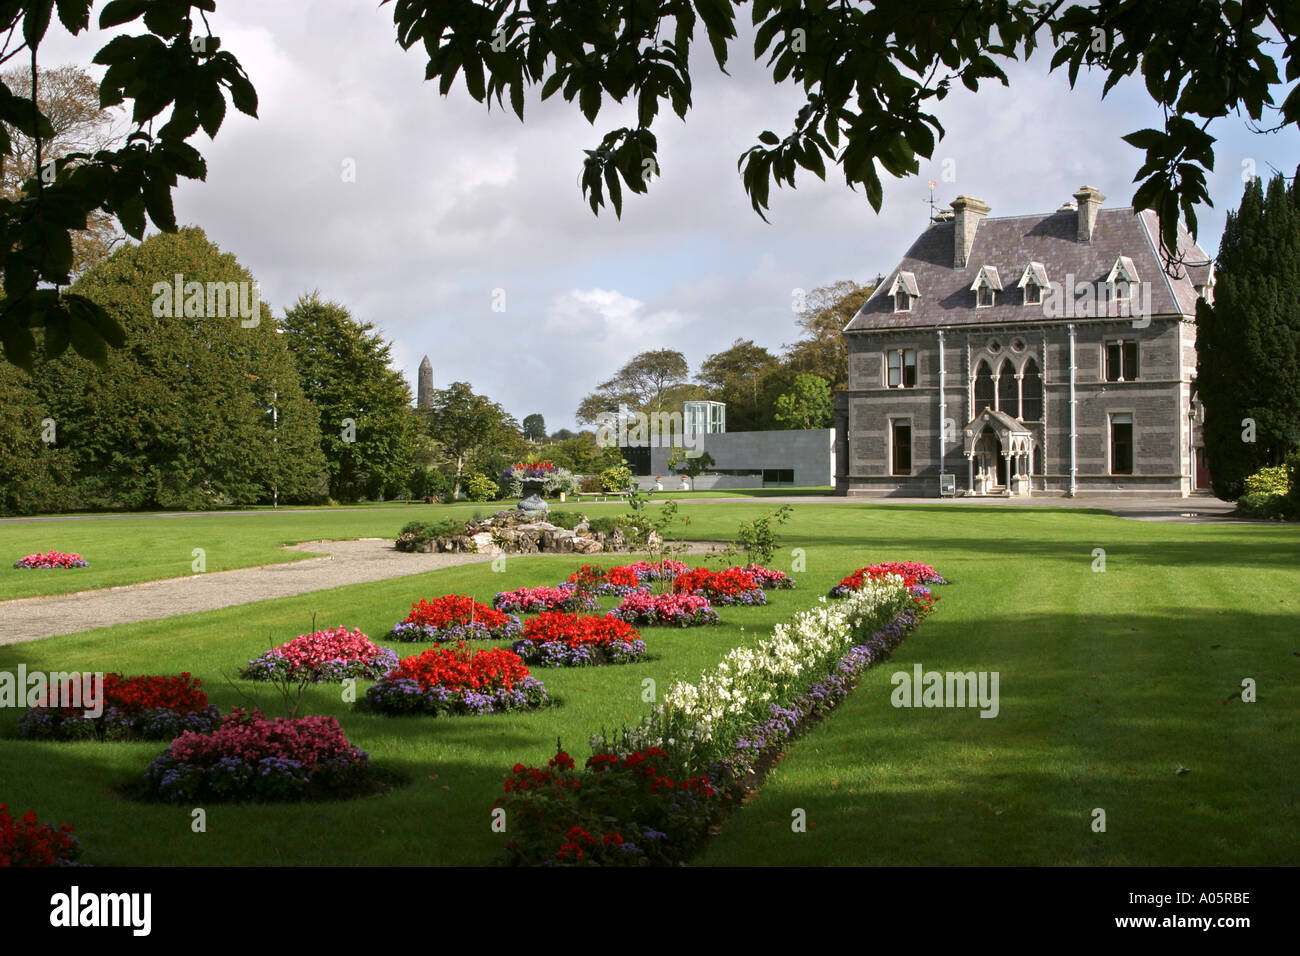 Ireland County Mayo Turlough Turlough House Country Life Museum - Stock Image